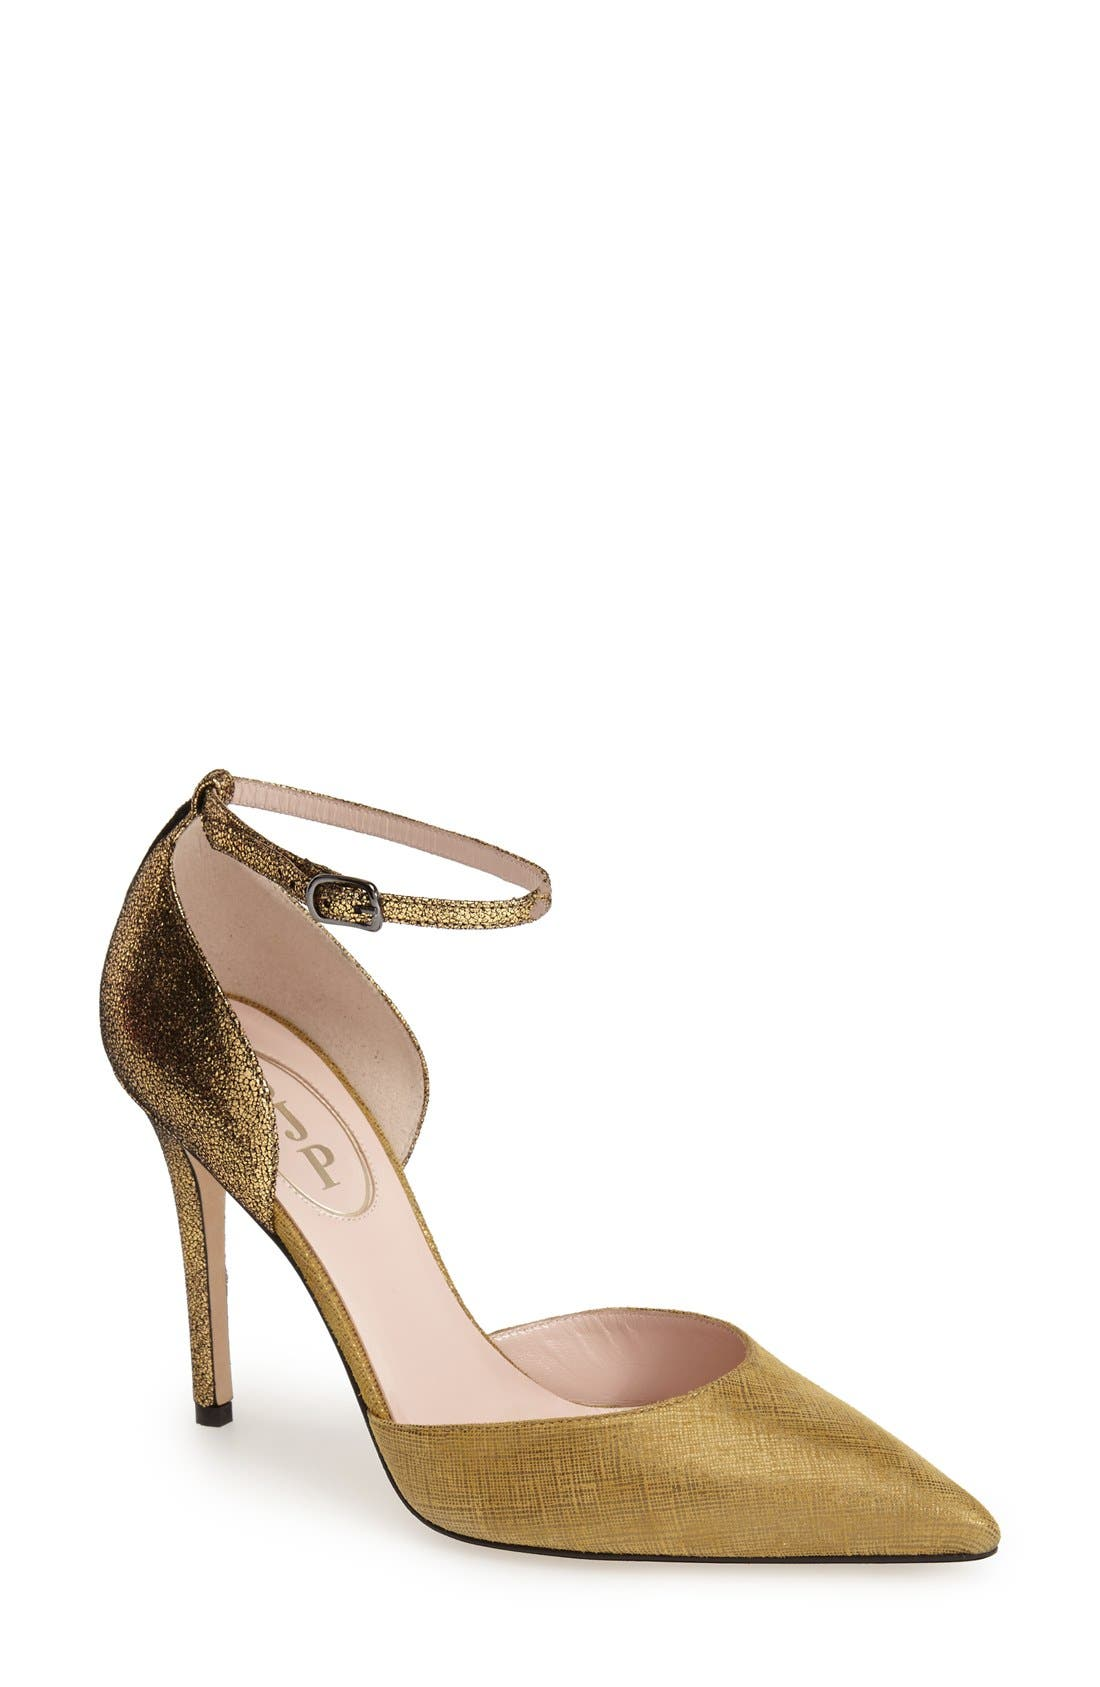 Main Image - SJP by Sarah Jessica Parker 'Bella' Pointy Toe Ankle Strap Pump (Women) (Nordstrom Exclusive)